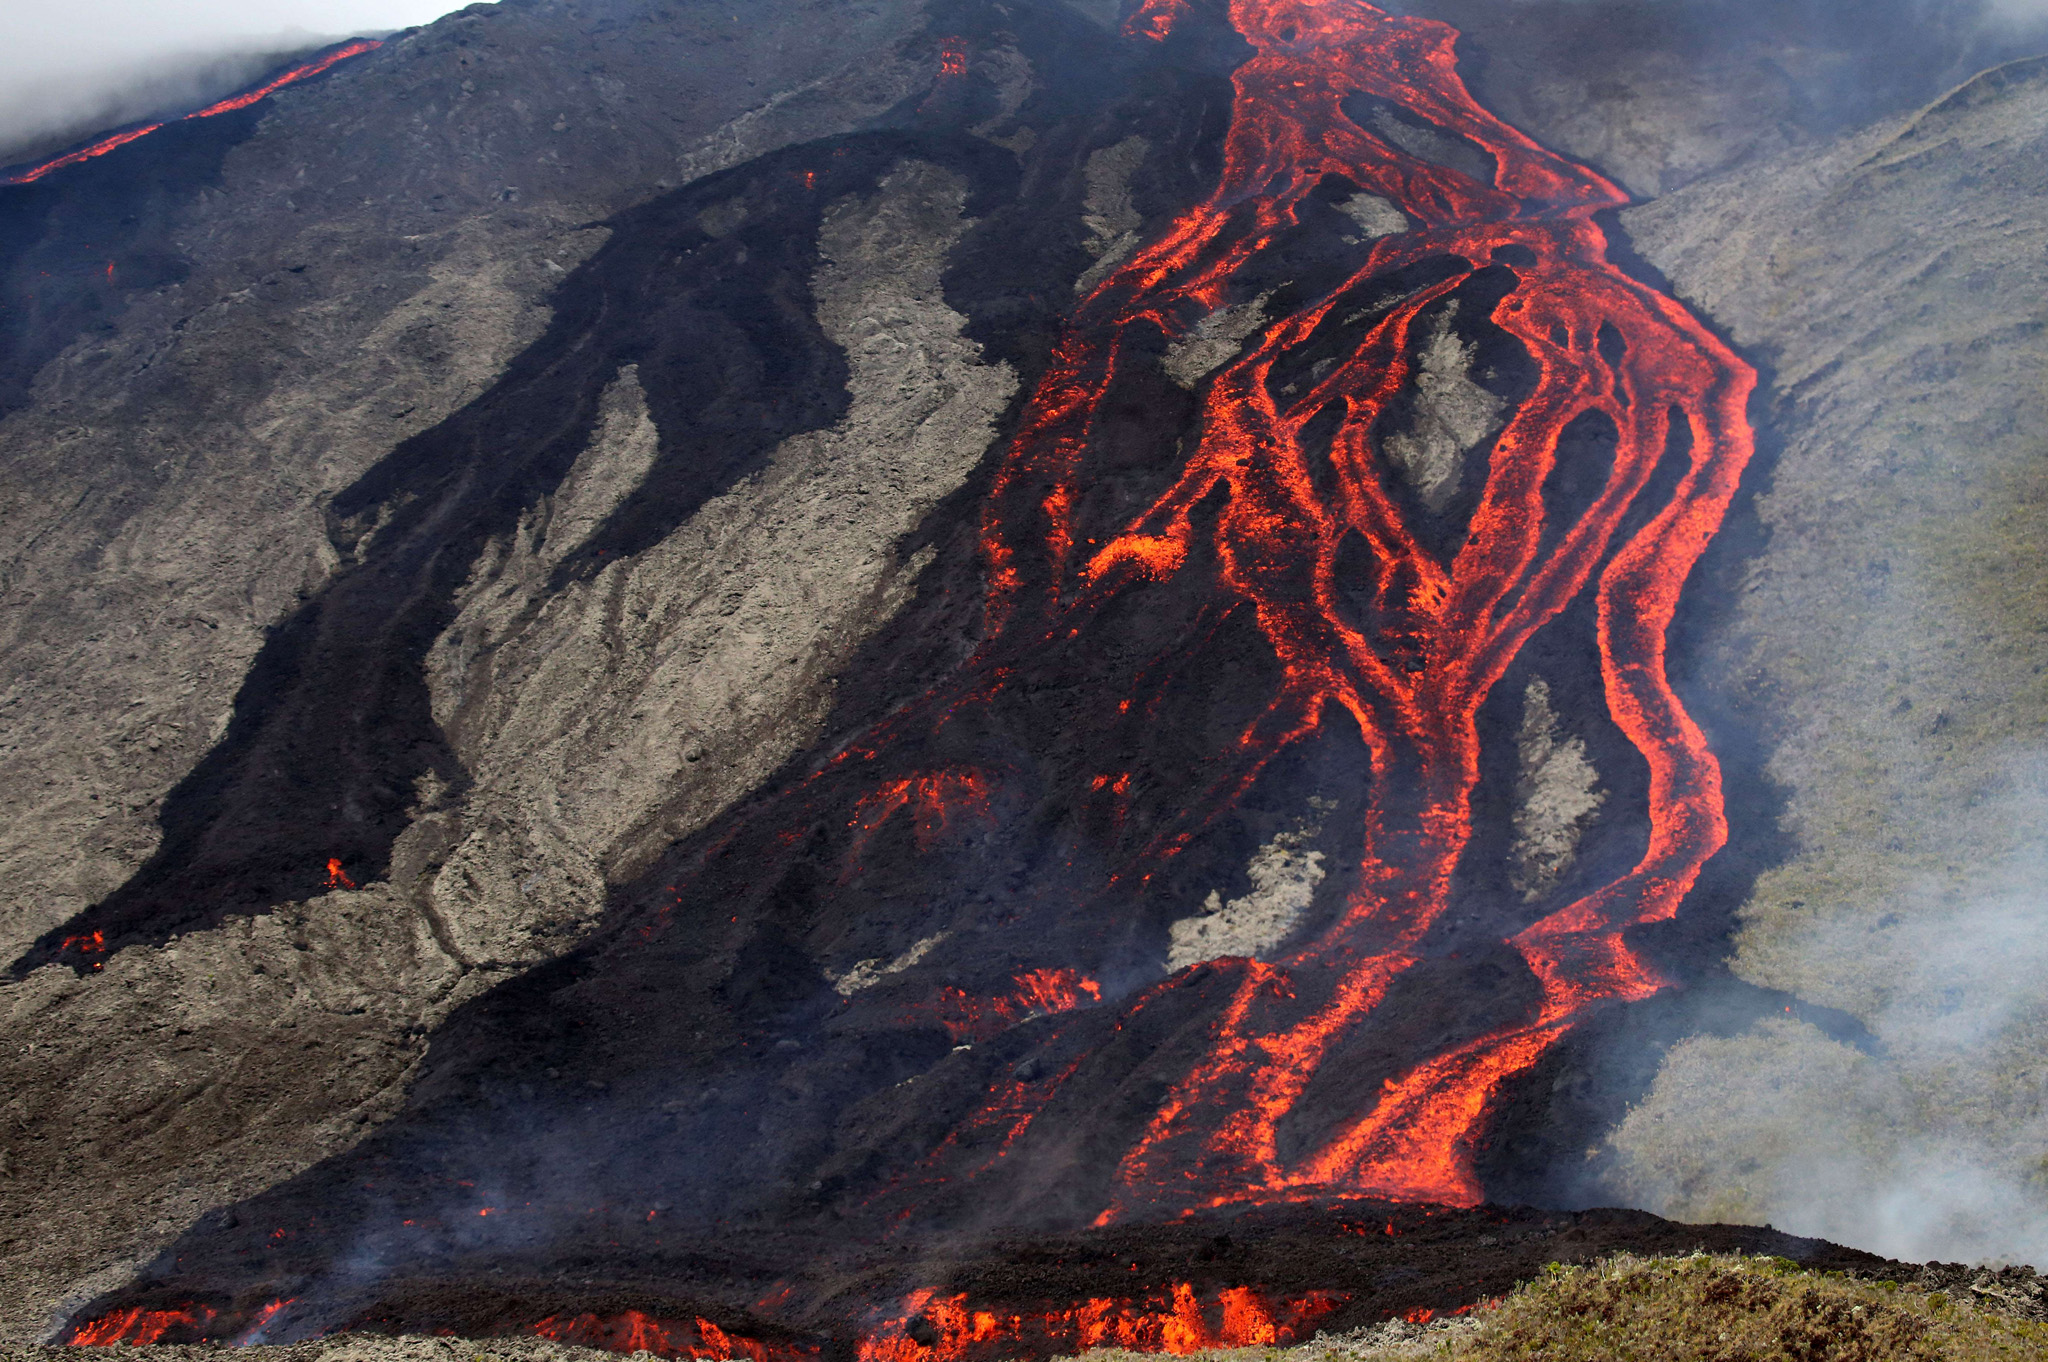 Lava flows out of the Piton de la Fournaise volcano as it erupts on the French island of La Reunion in the Indian Ocean.